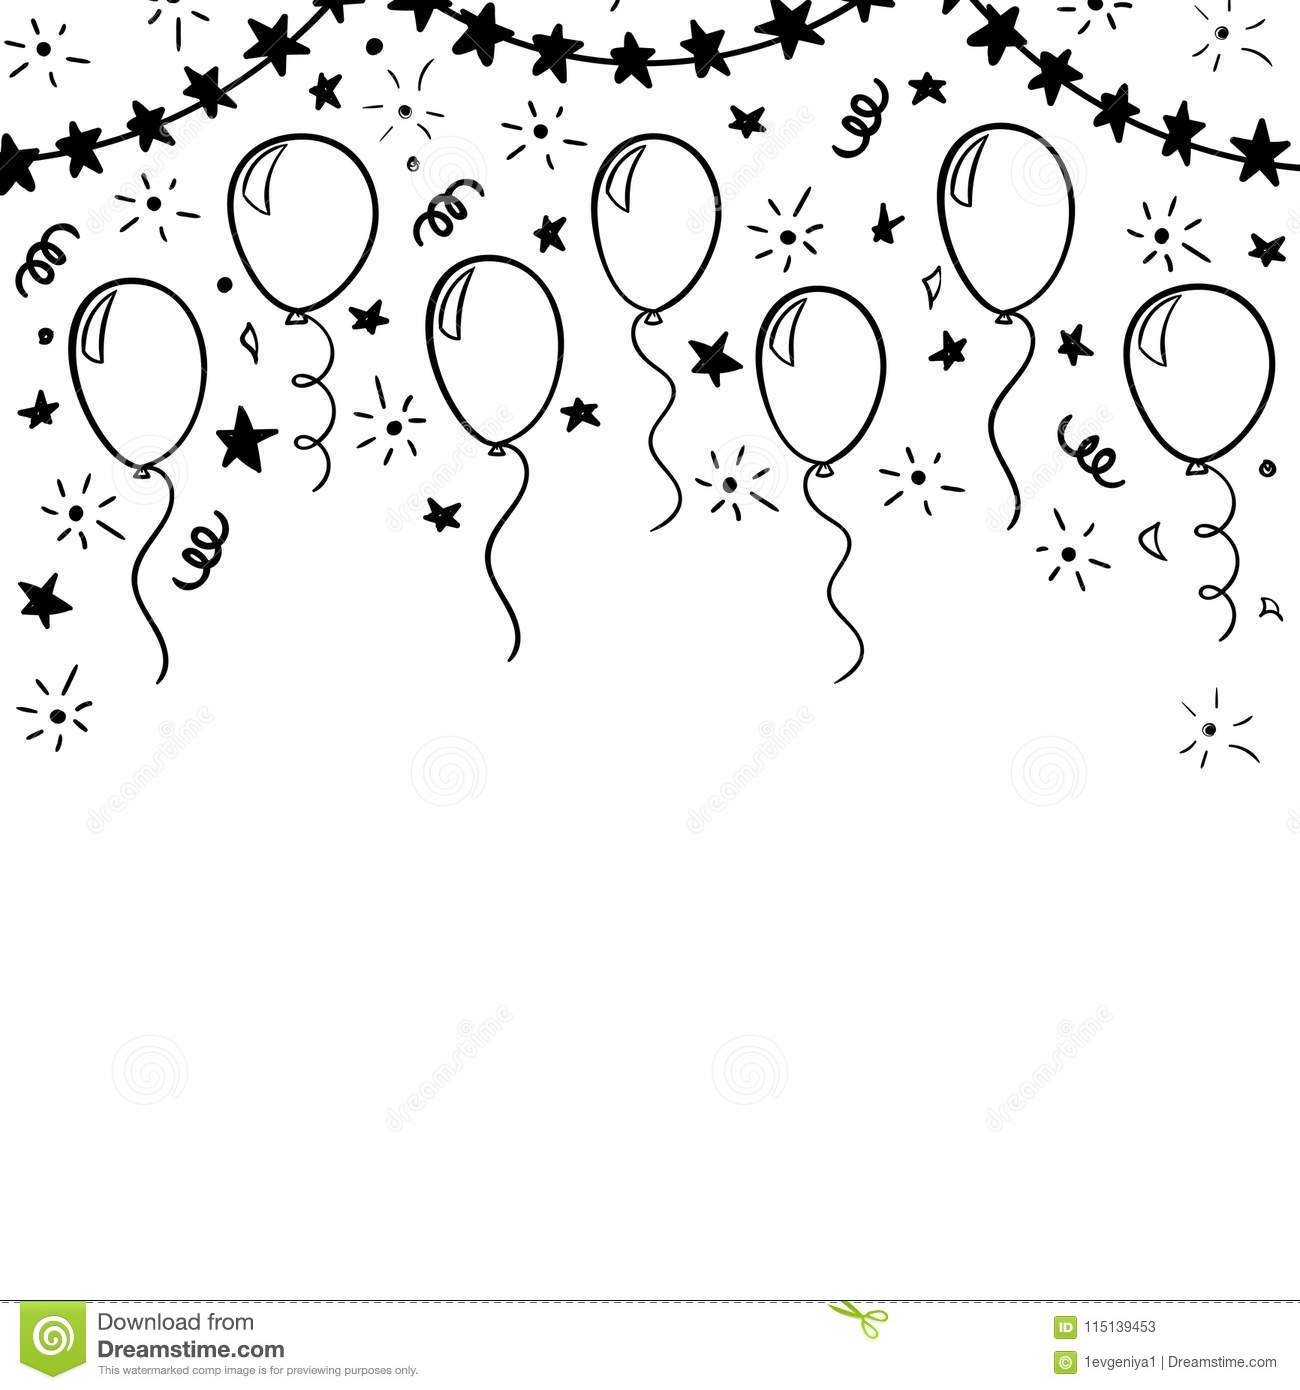 Hand Drawn Doodle Black And White Balloon Design Holiday